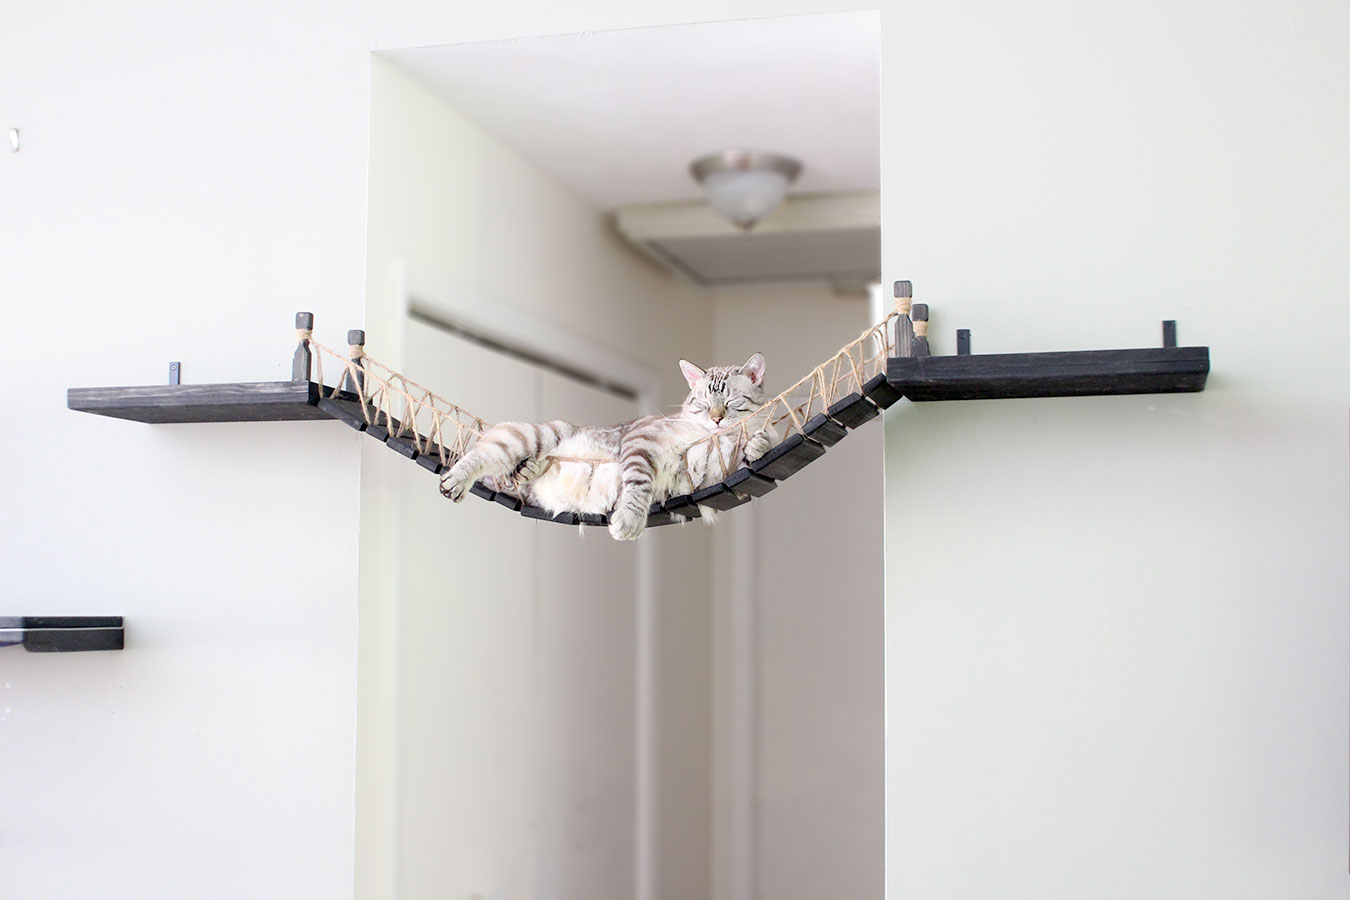 Roped Cat Bridge ⋆ Catastrophic Creations